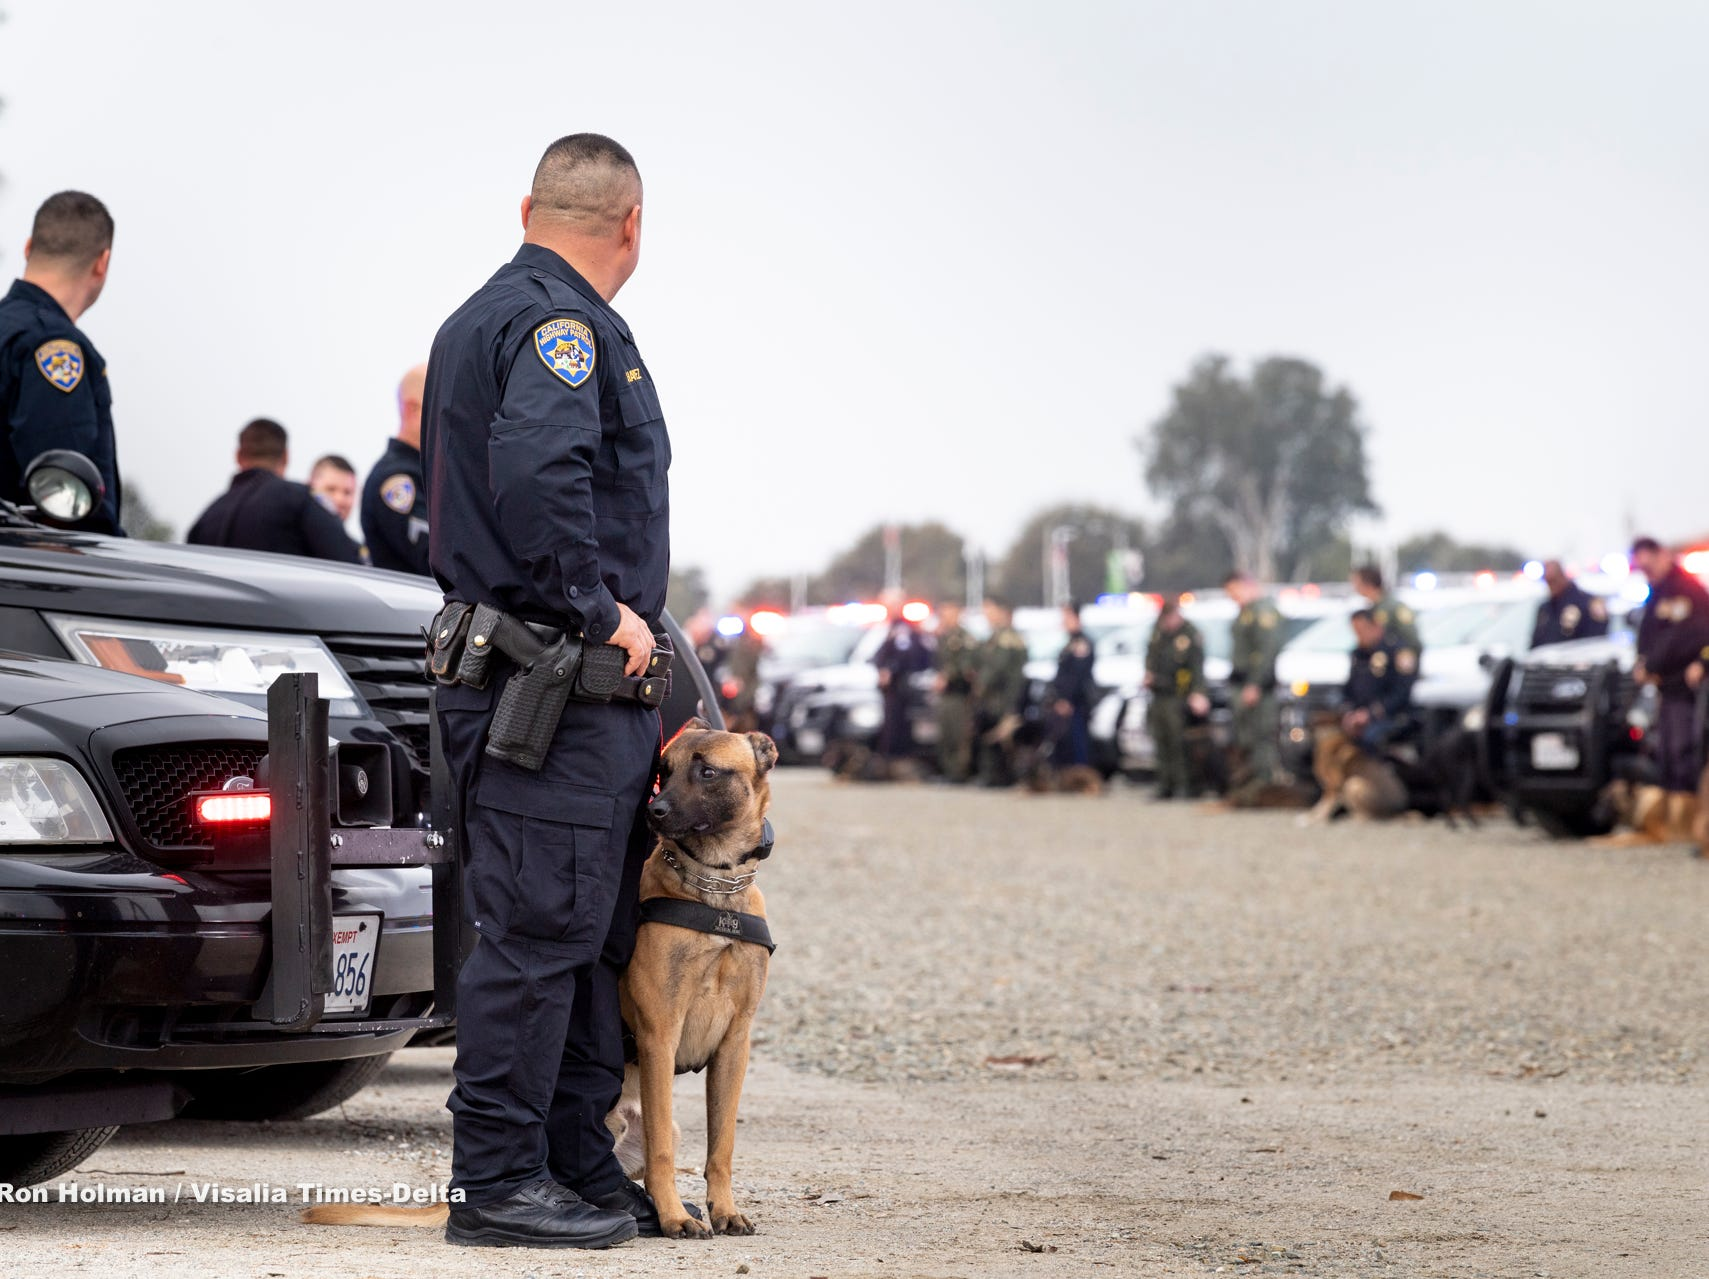 """CHP officer Code Chavez, left, and his partner Boj join other K-9 units from the Central Valley to show respect for Tulare Police K-9 """"Bane"""" during a memorial service for the dog on Wednesday, January 9, 2019. Bane was killed during an officer-involved shooting on December 9 of last year."""